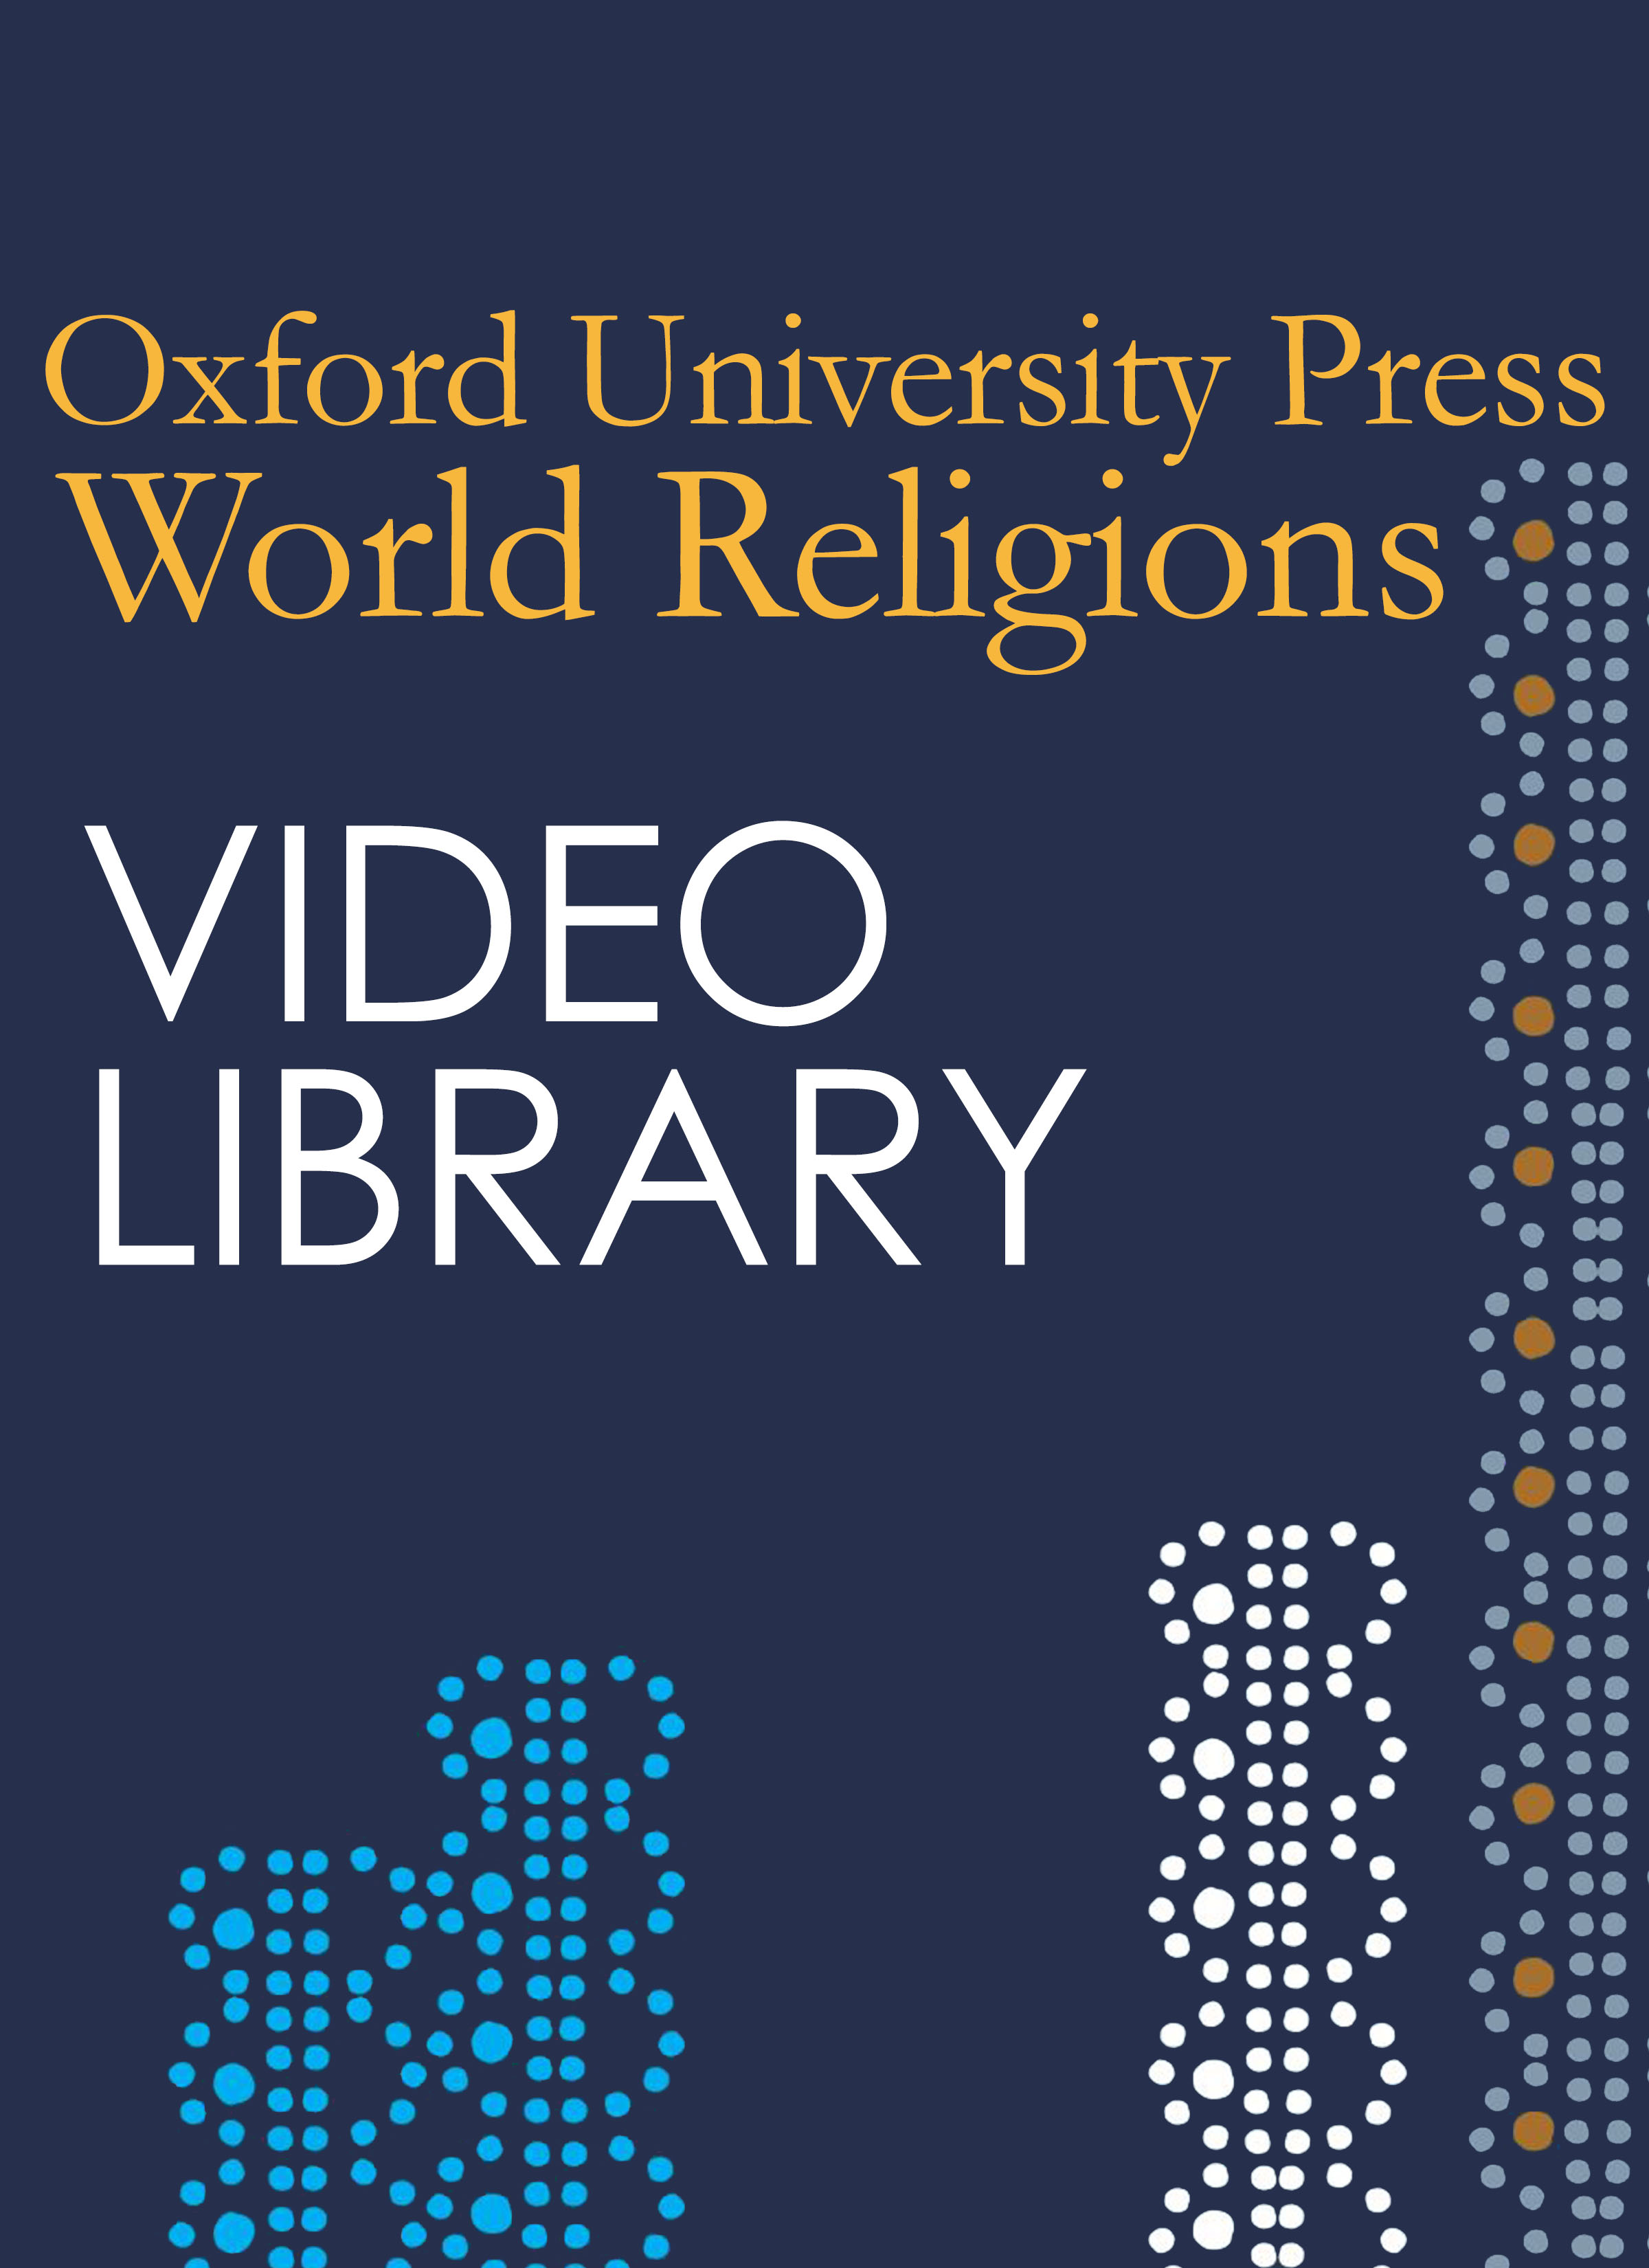 ARC Resources for OUP World Religions Video Library